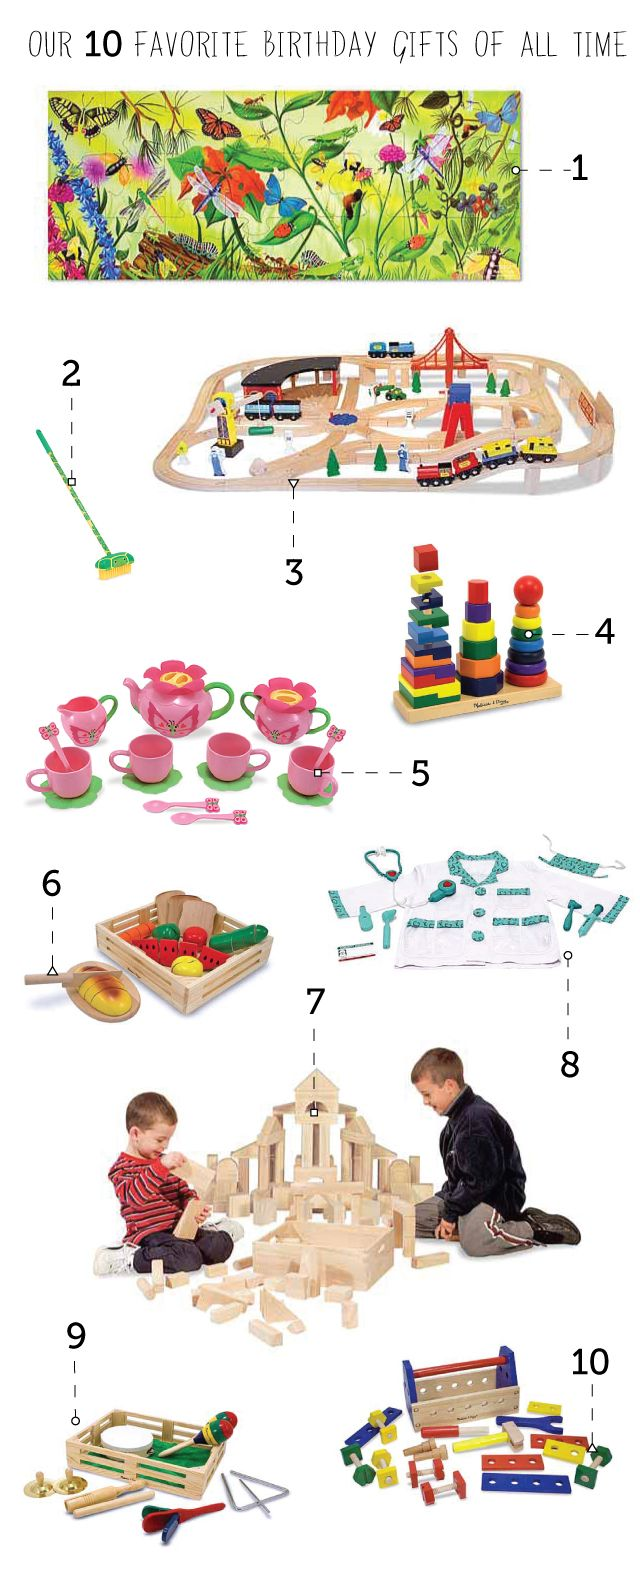 Top 10 best birthday gifts for kids